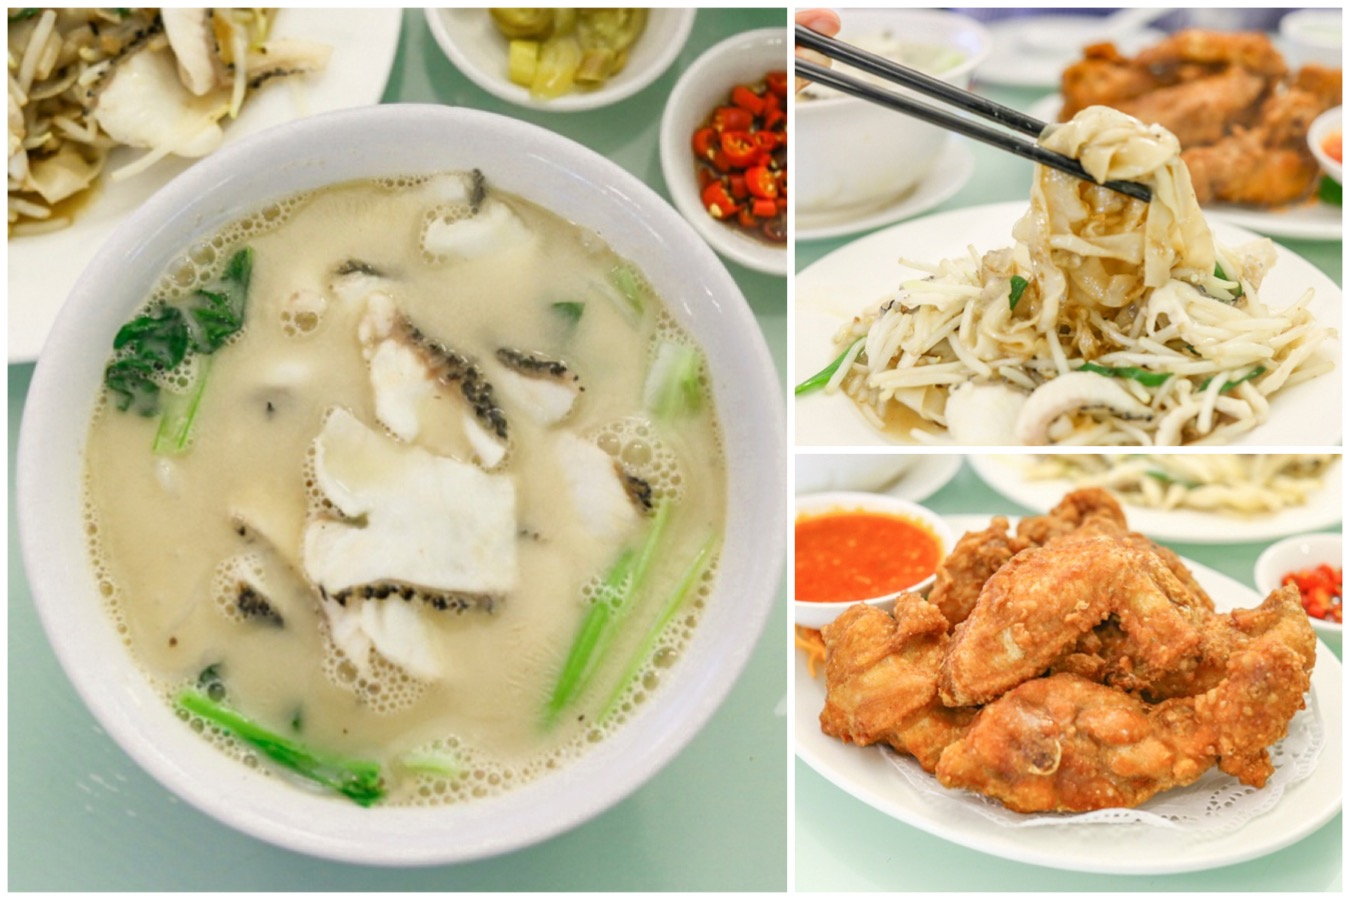 Ka-Soh Restaurant - For Sliced Fish Soup And Prawn Paste Chicken. With Michelin Bib Gourmand